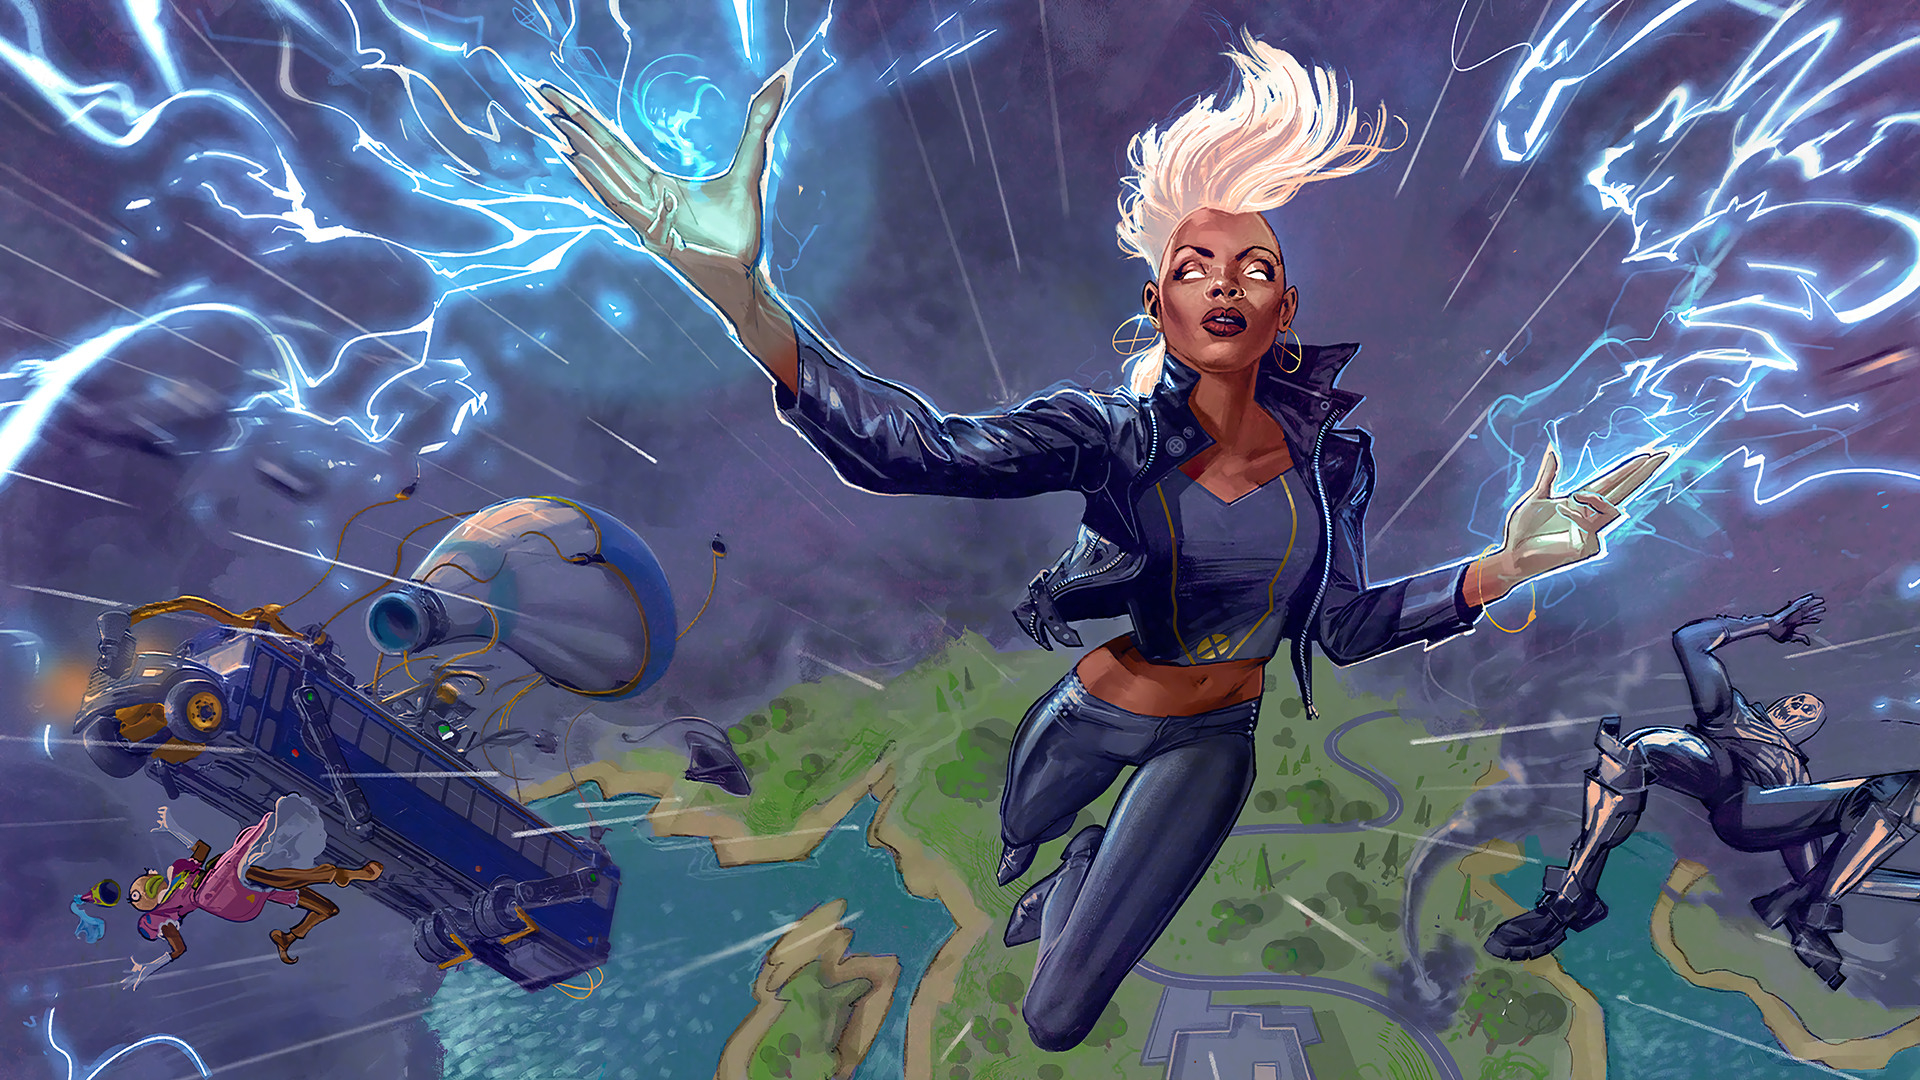 Storm Cool Fortnite Chapter 2 Wallpaper Hd Games 4k Wallpapers Images Photos And Background